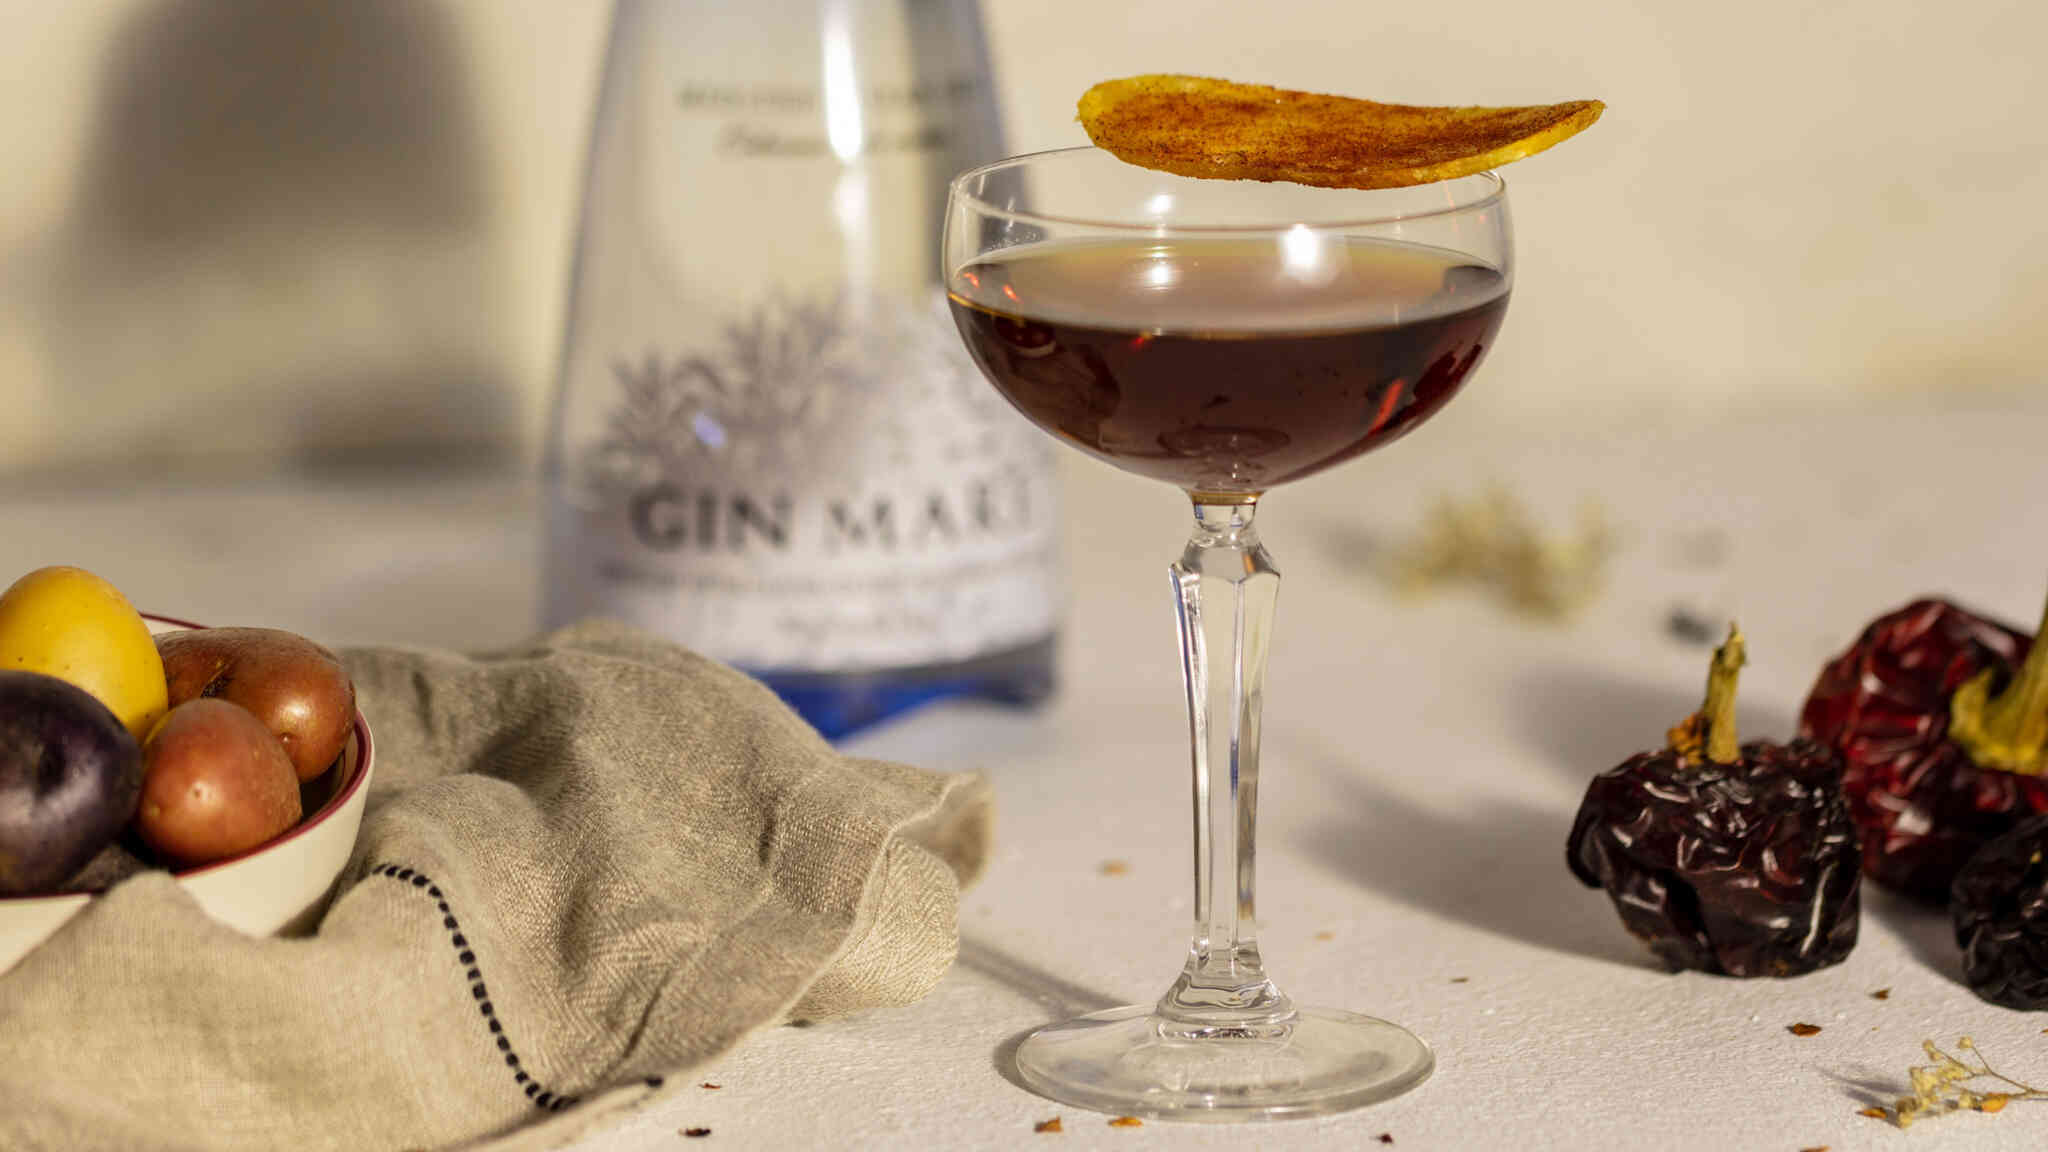 gin mare cocktail